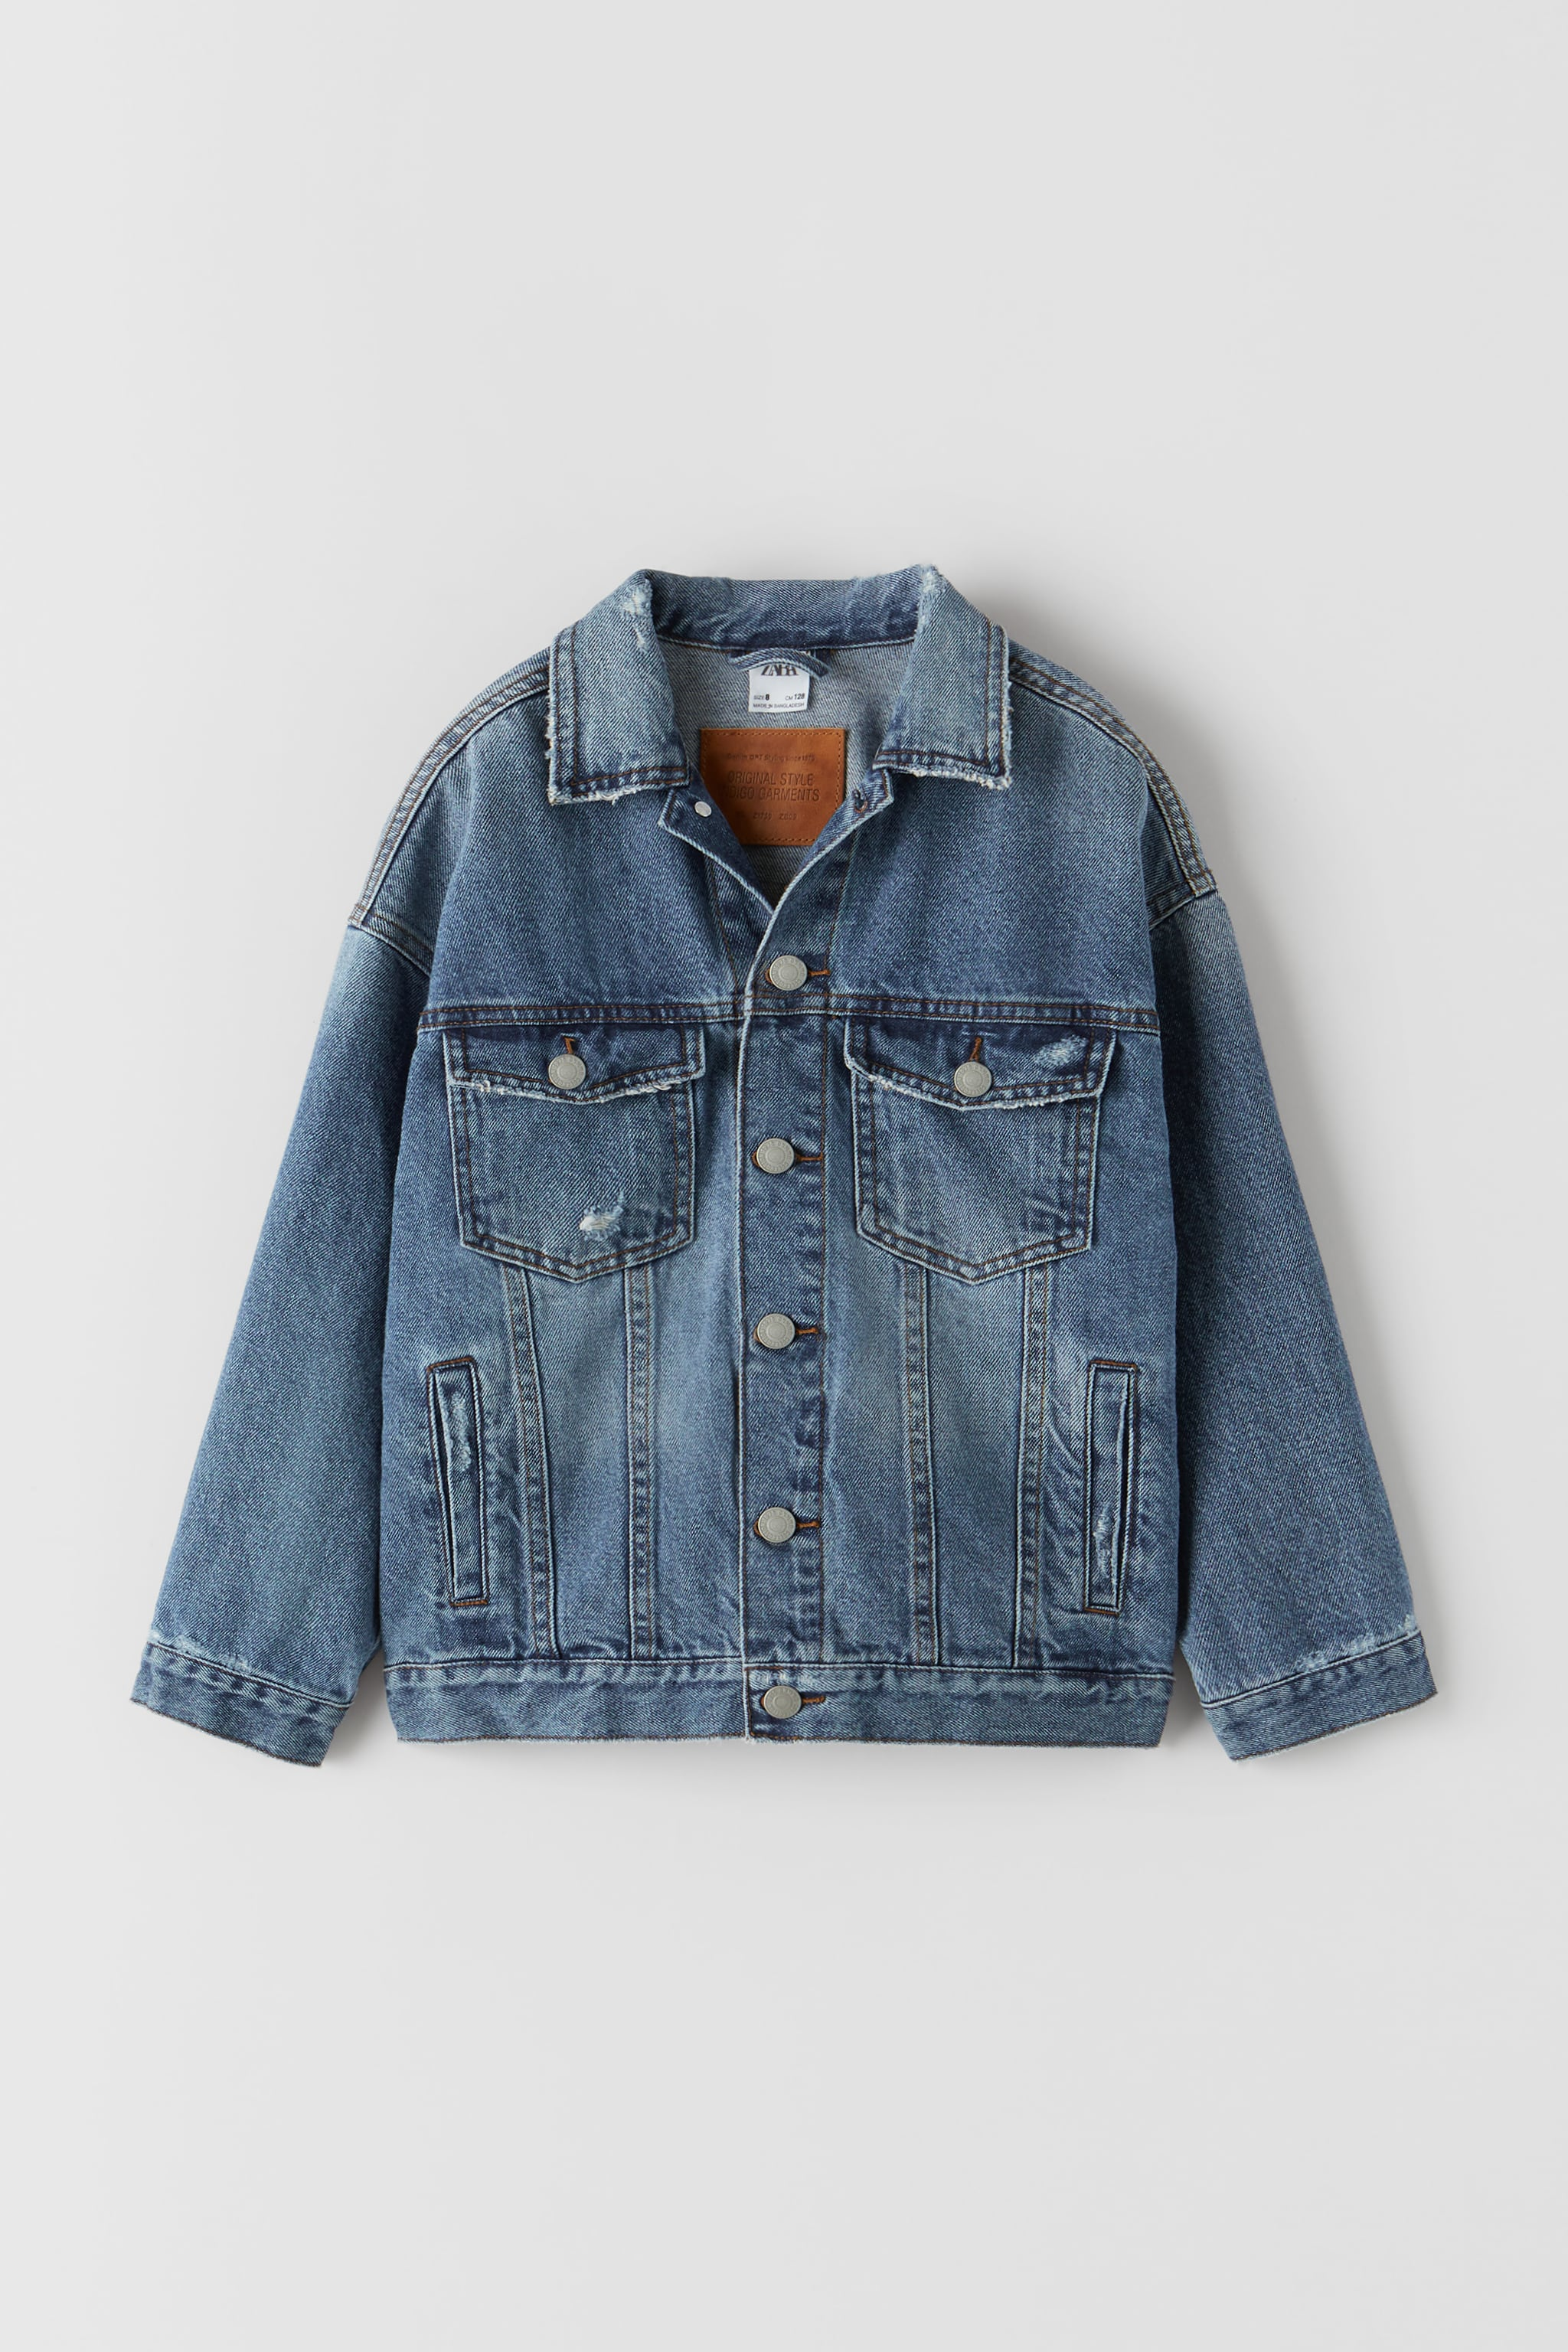 Zara INDIGO BASIC DENIM JACKET